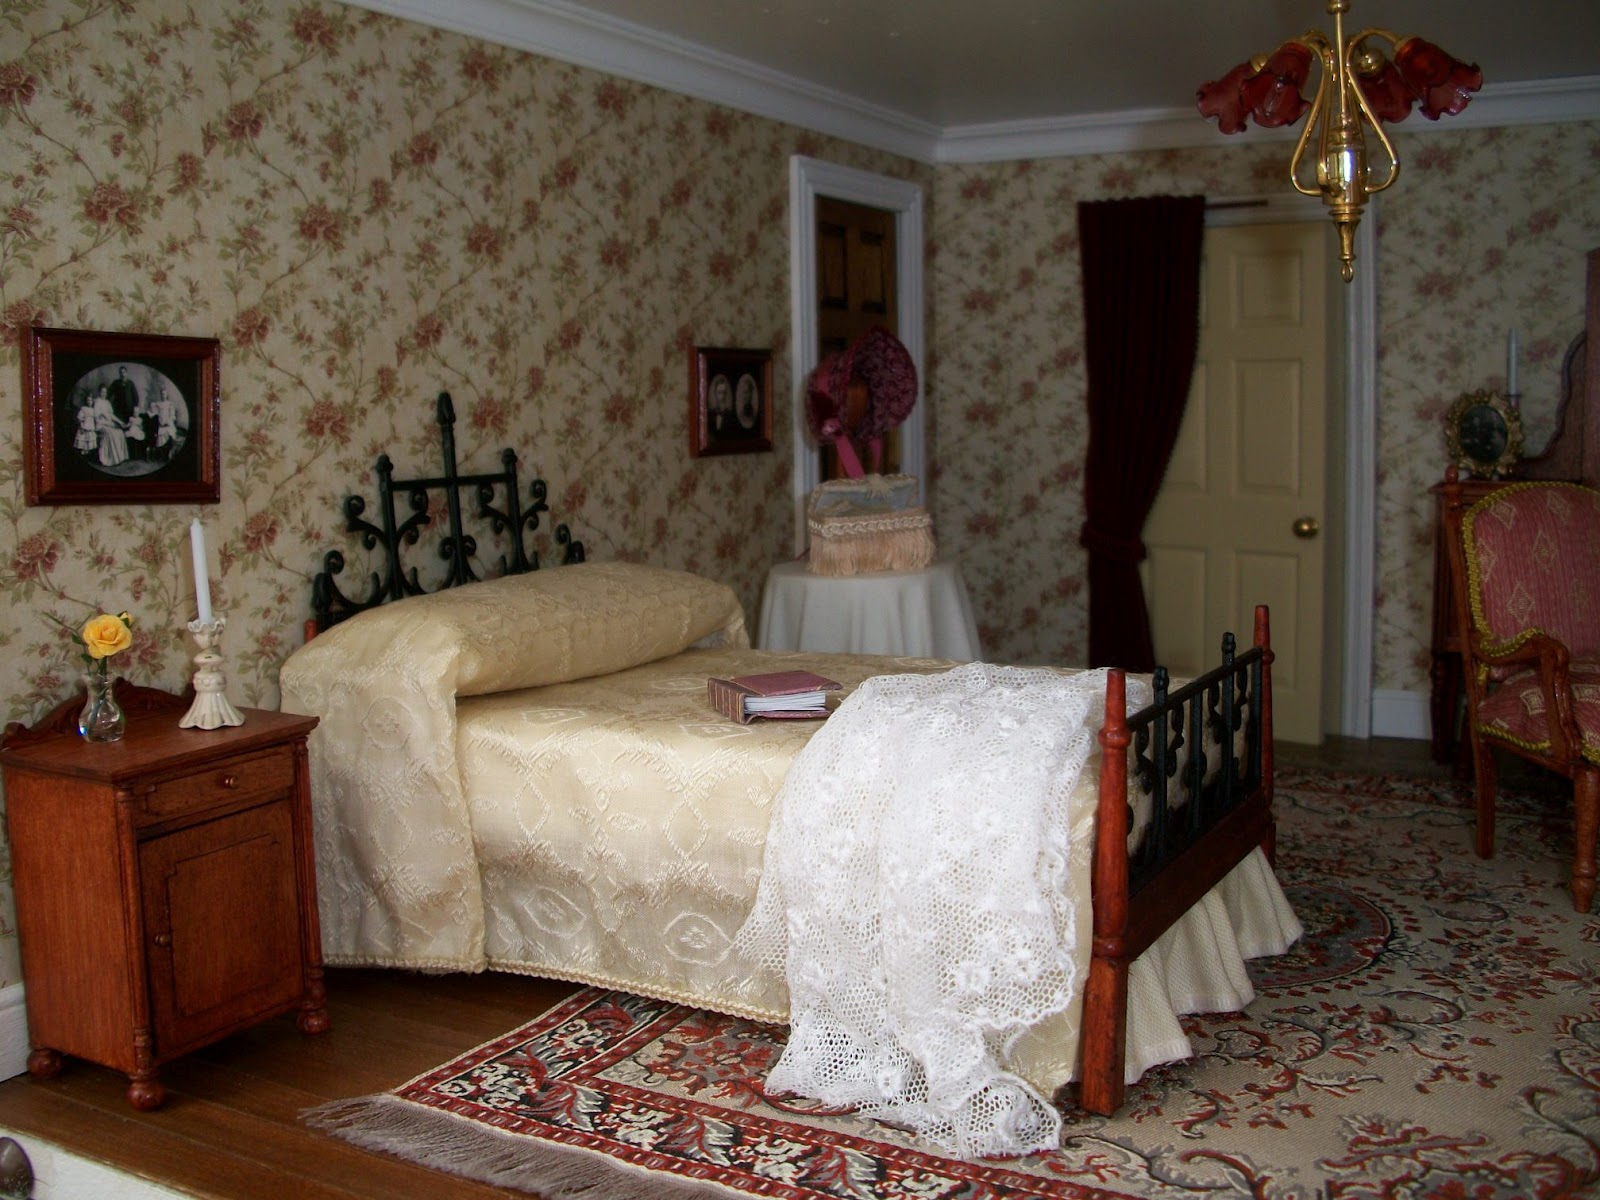 inspiration bedroom above iliana drapes styles red coronet area drape blackout and bed velvet lined rooms curtains with fascinating of snif picture for bedcover living dining praline eyelet appealing